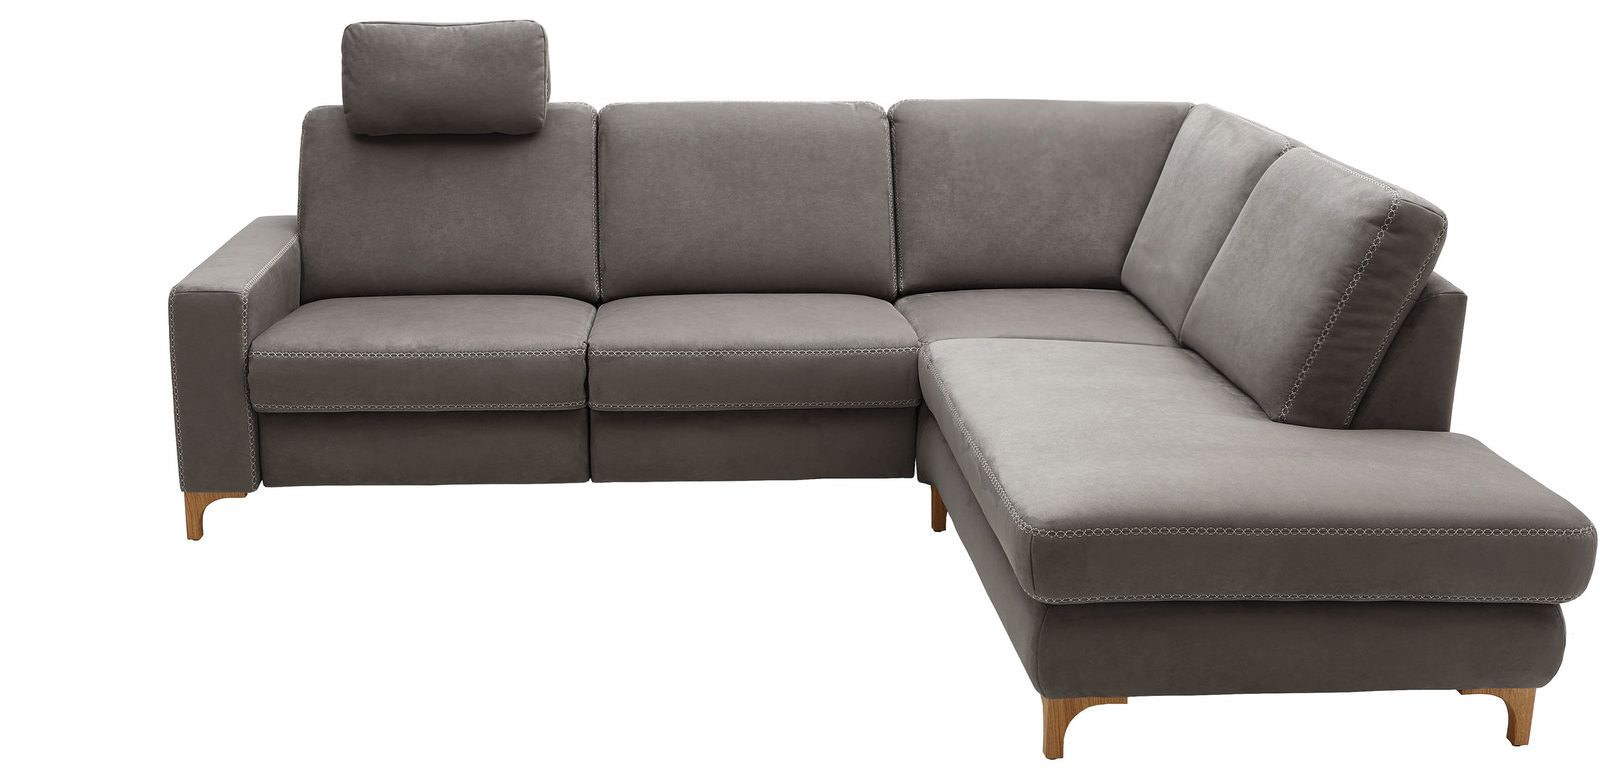 Bemerkenswert Polstergarnituren 3 2 1 Sitzer Sectional Couch Decor Couch